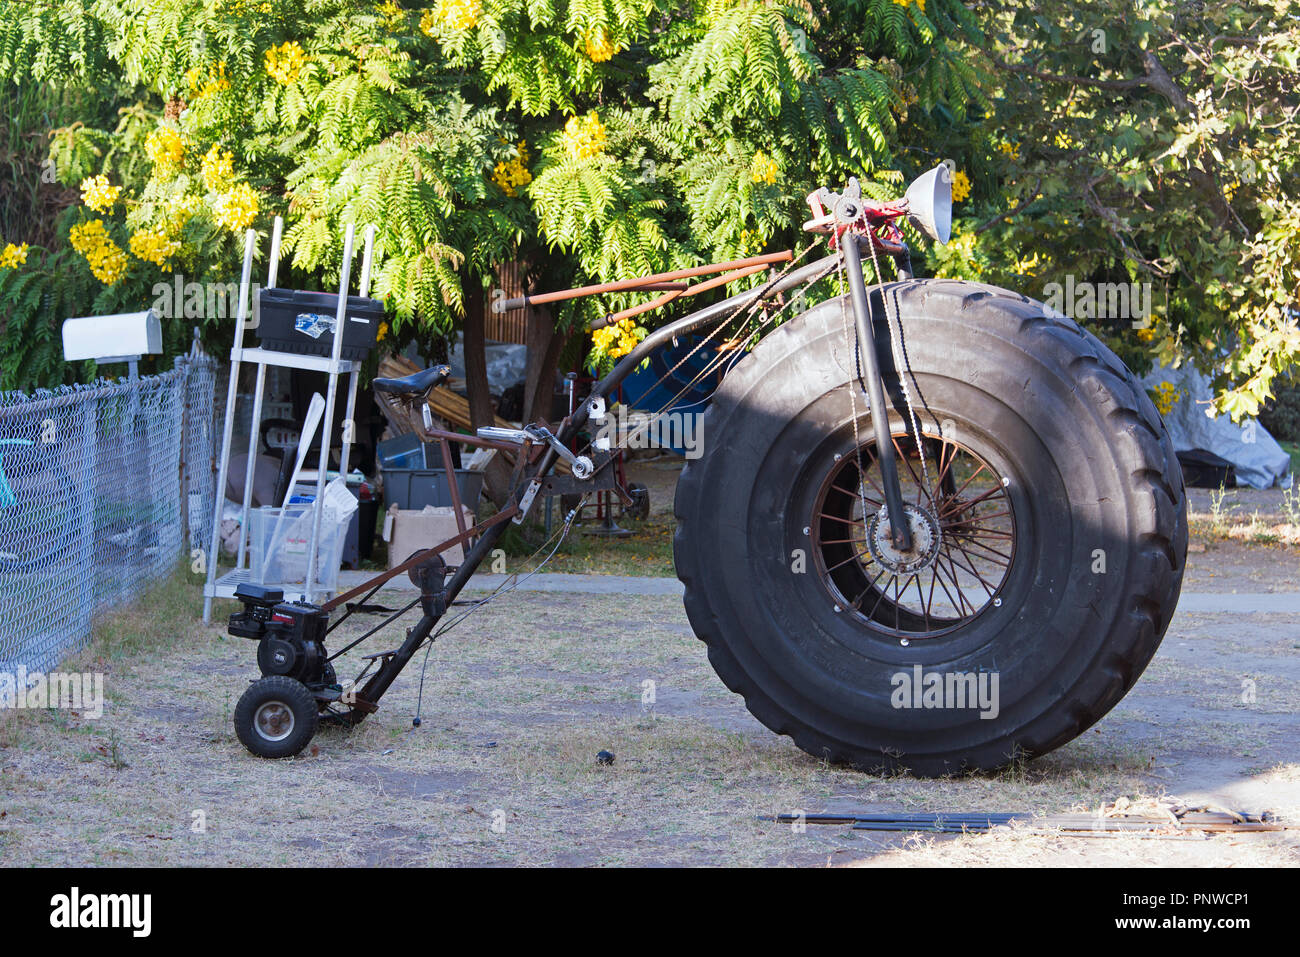 A big tire motorcycle customized in the street - Stock Image